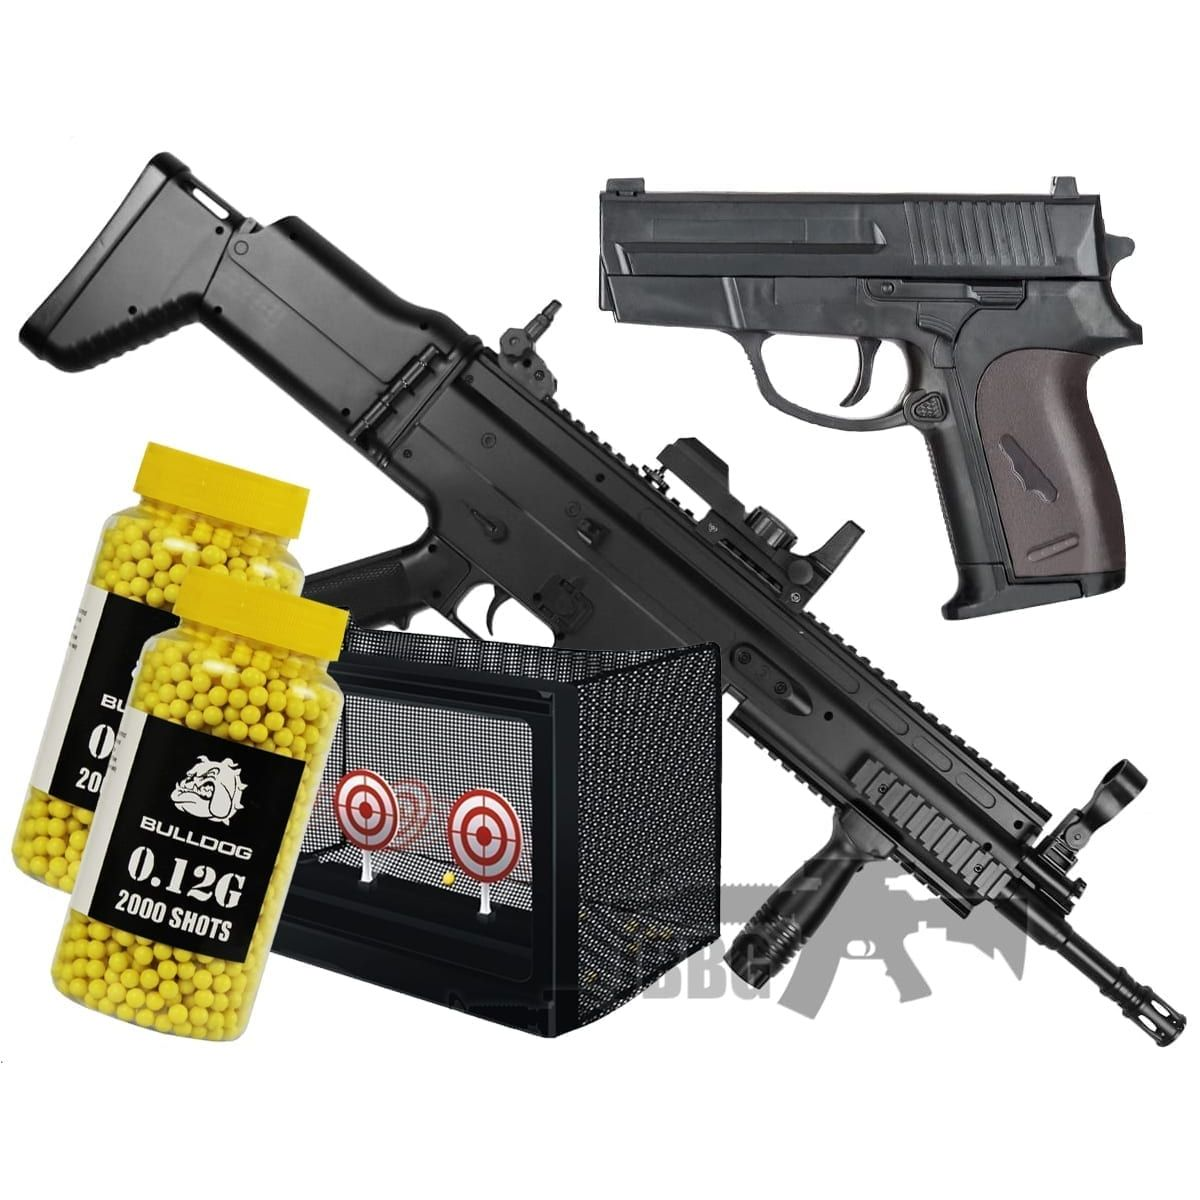 001 airsoft bb gun bundle sets